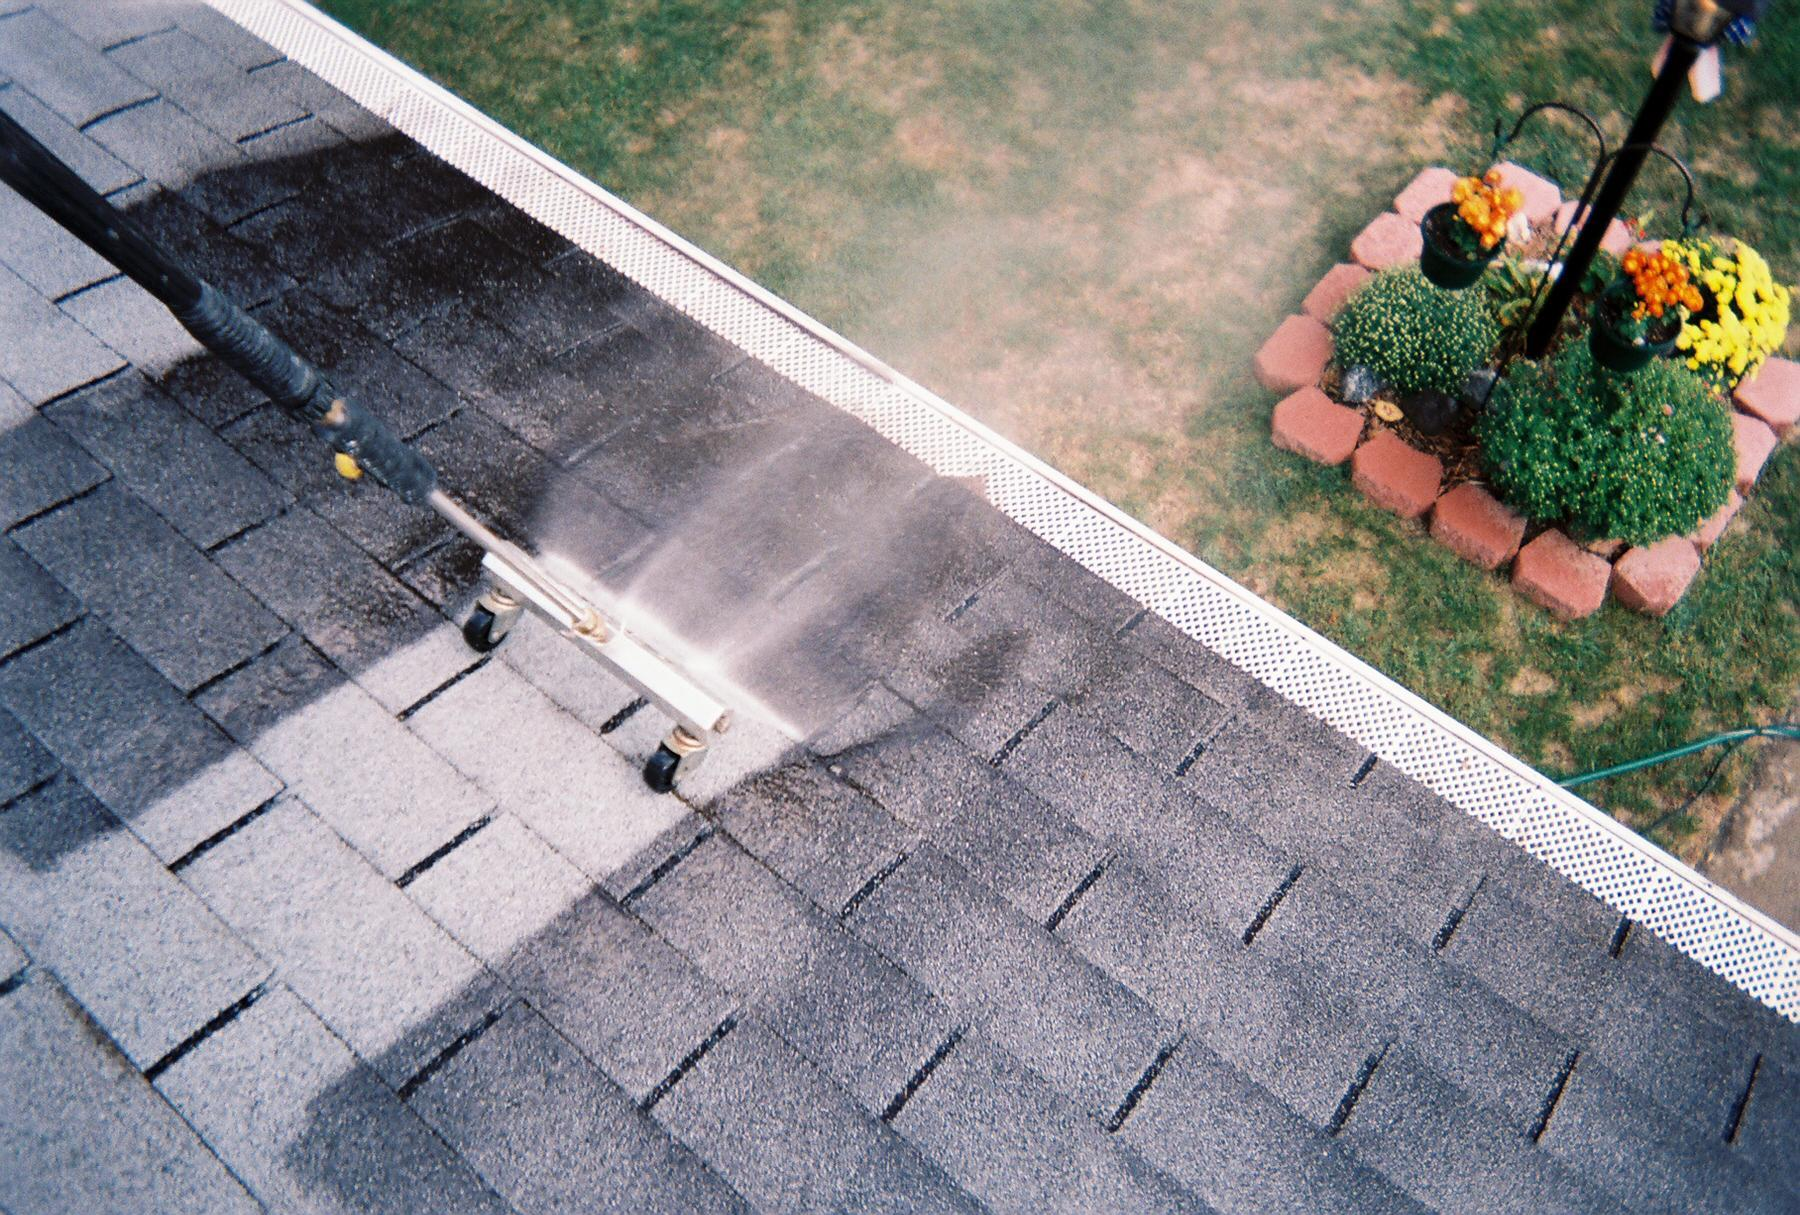 Roof Cleaning Contractors Hiring The Best Company For The